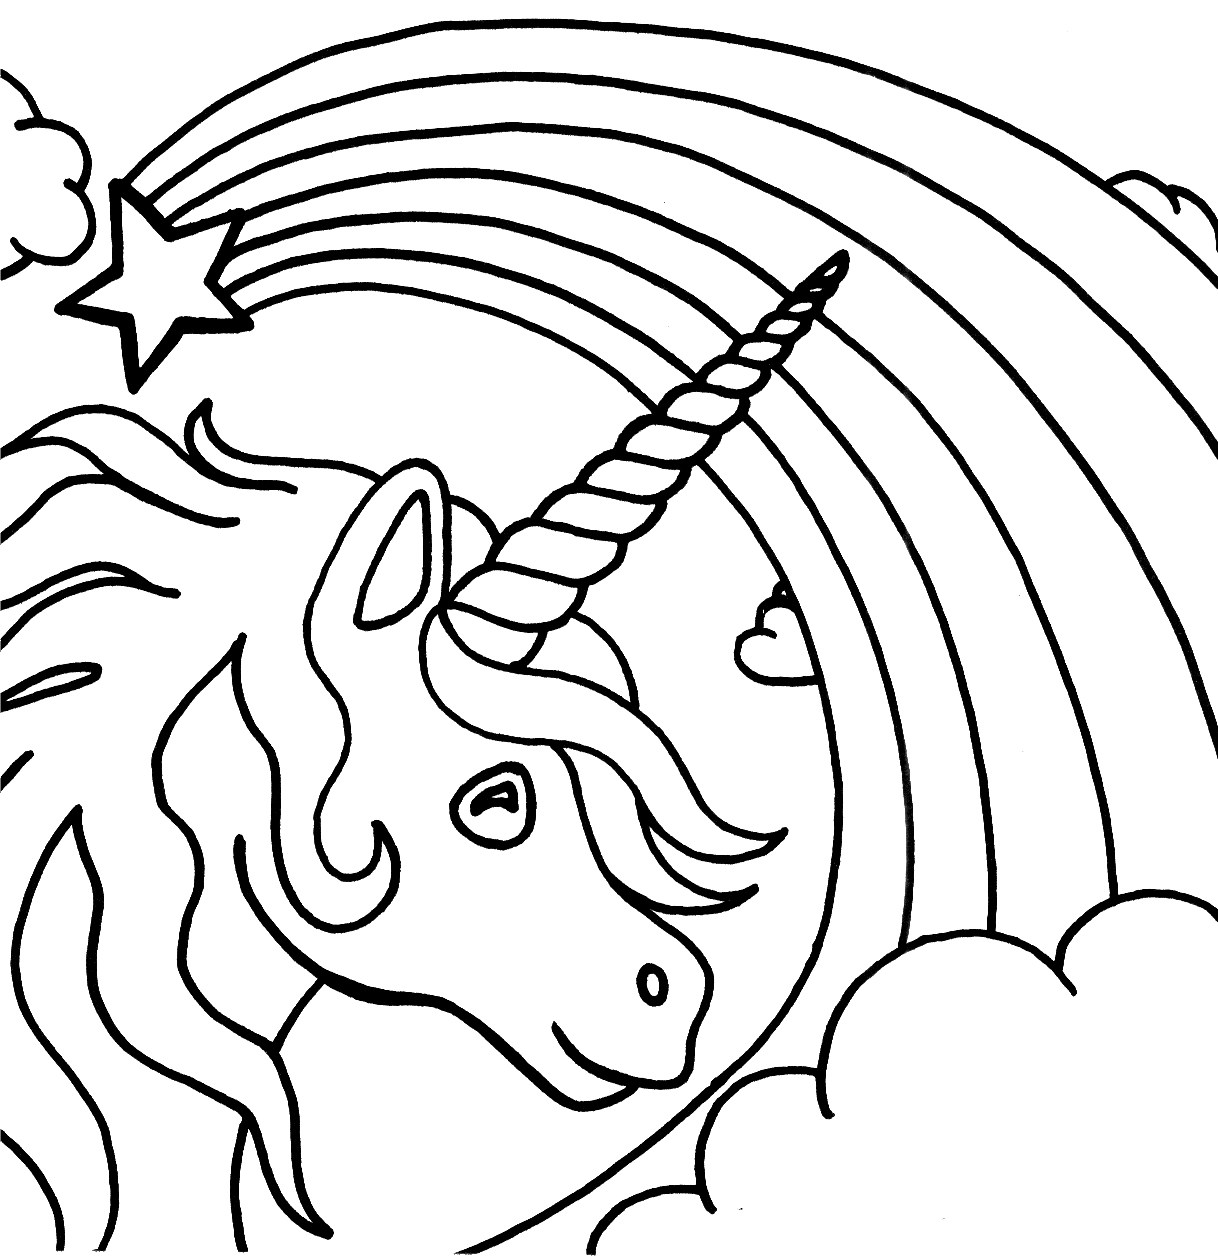 Free Coloring Pages For Kids Coloring Pages For Kids